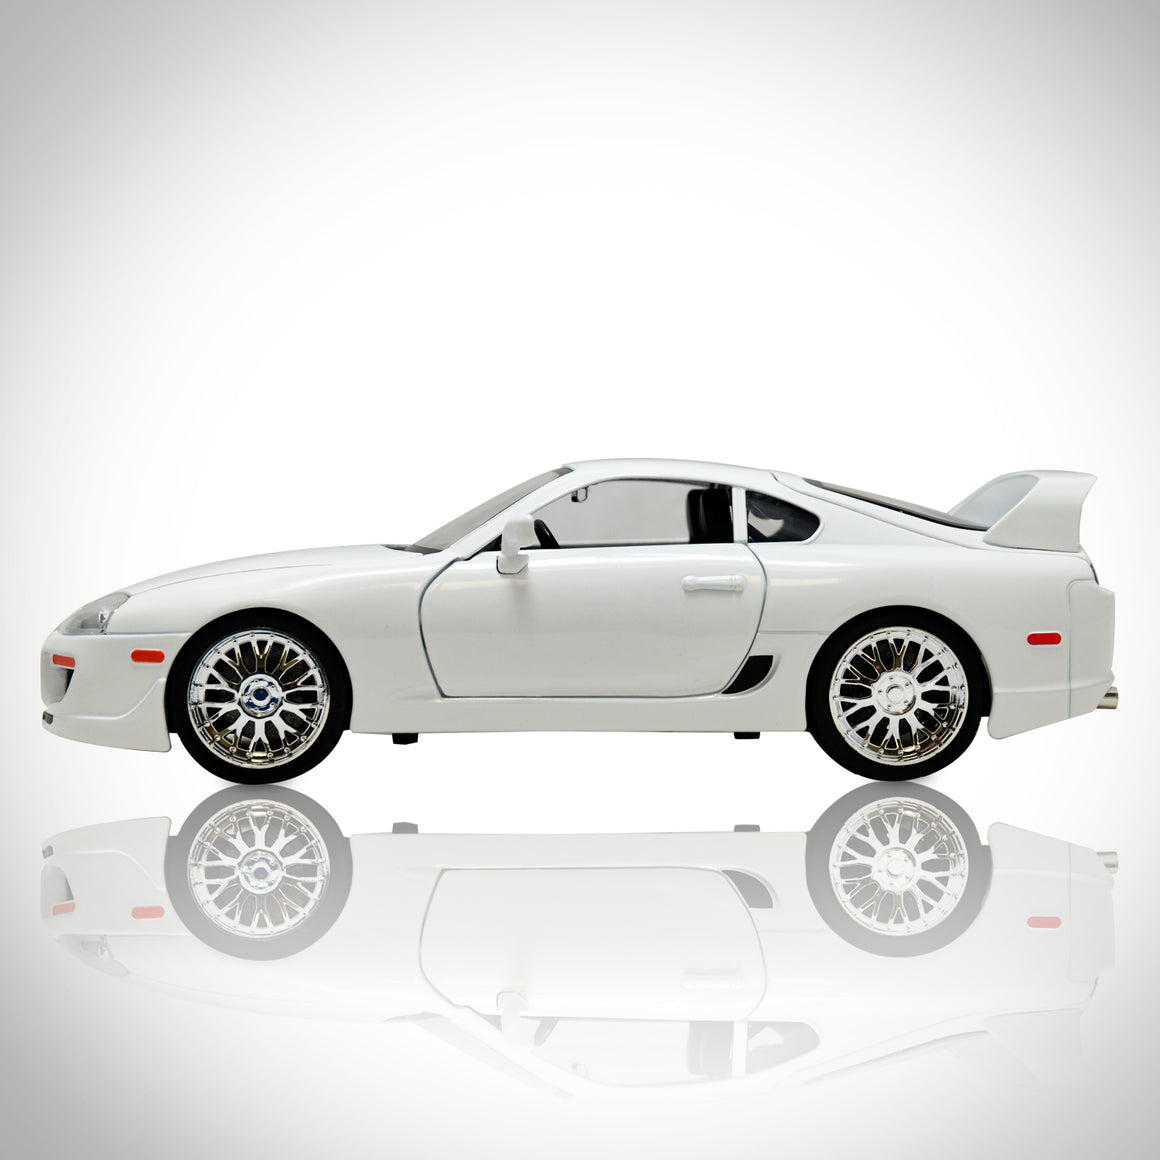 FAST & FURIOUS - BRIAN'S WHITE SUPRA 1/18 Exclusive Elite Edition  Die-Cast Car Display Set